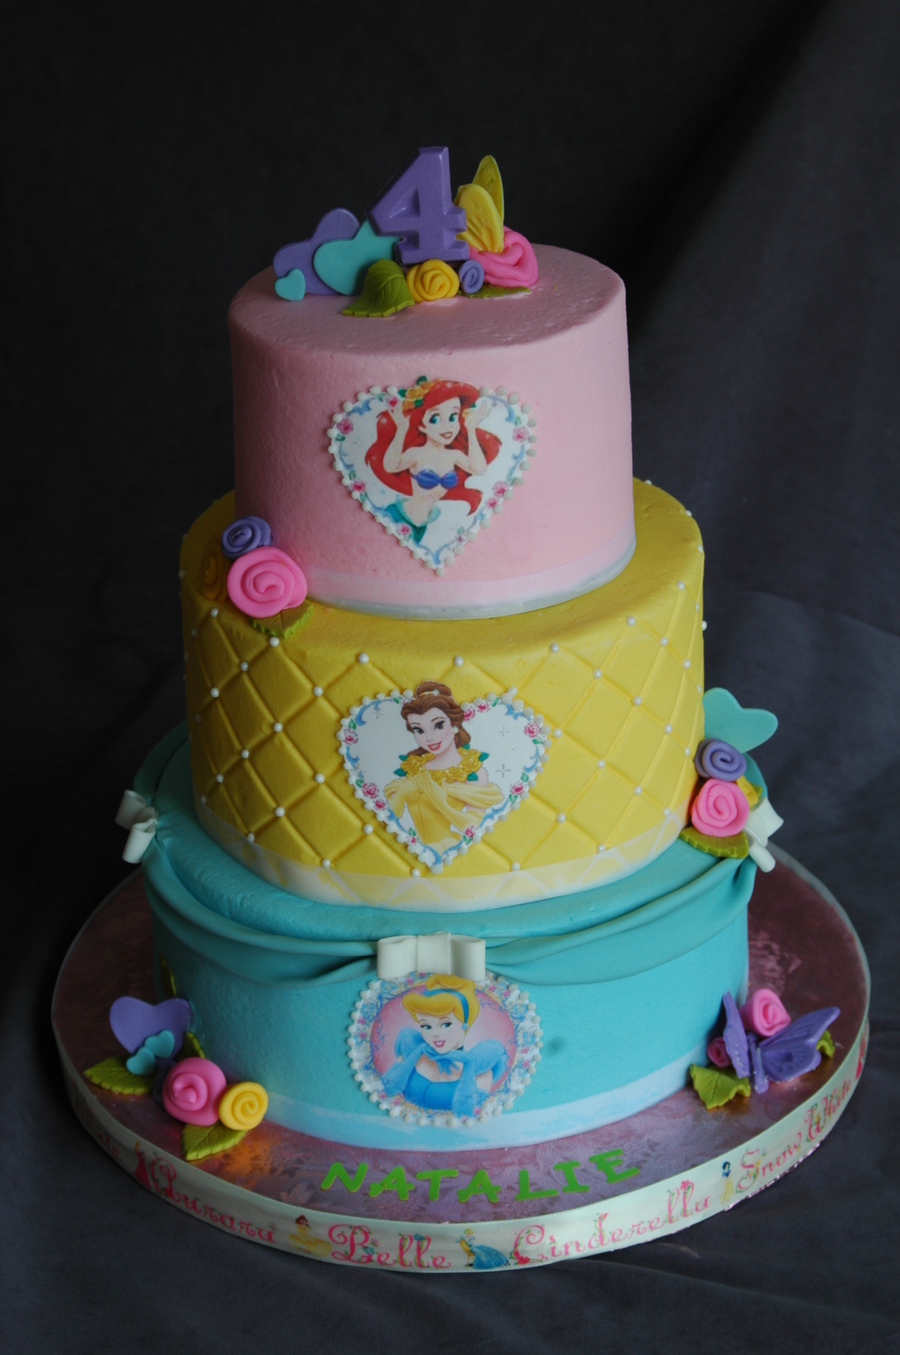 Fabulous Disney Princess Birthday Cakecentral Com Birthday Cards Printable Benkemecafe Filternl